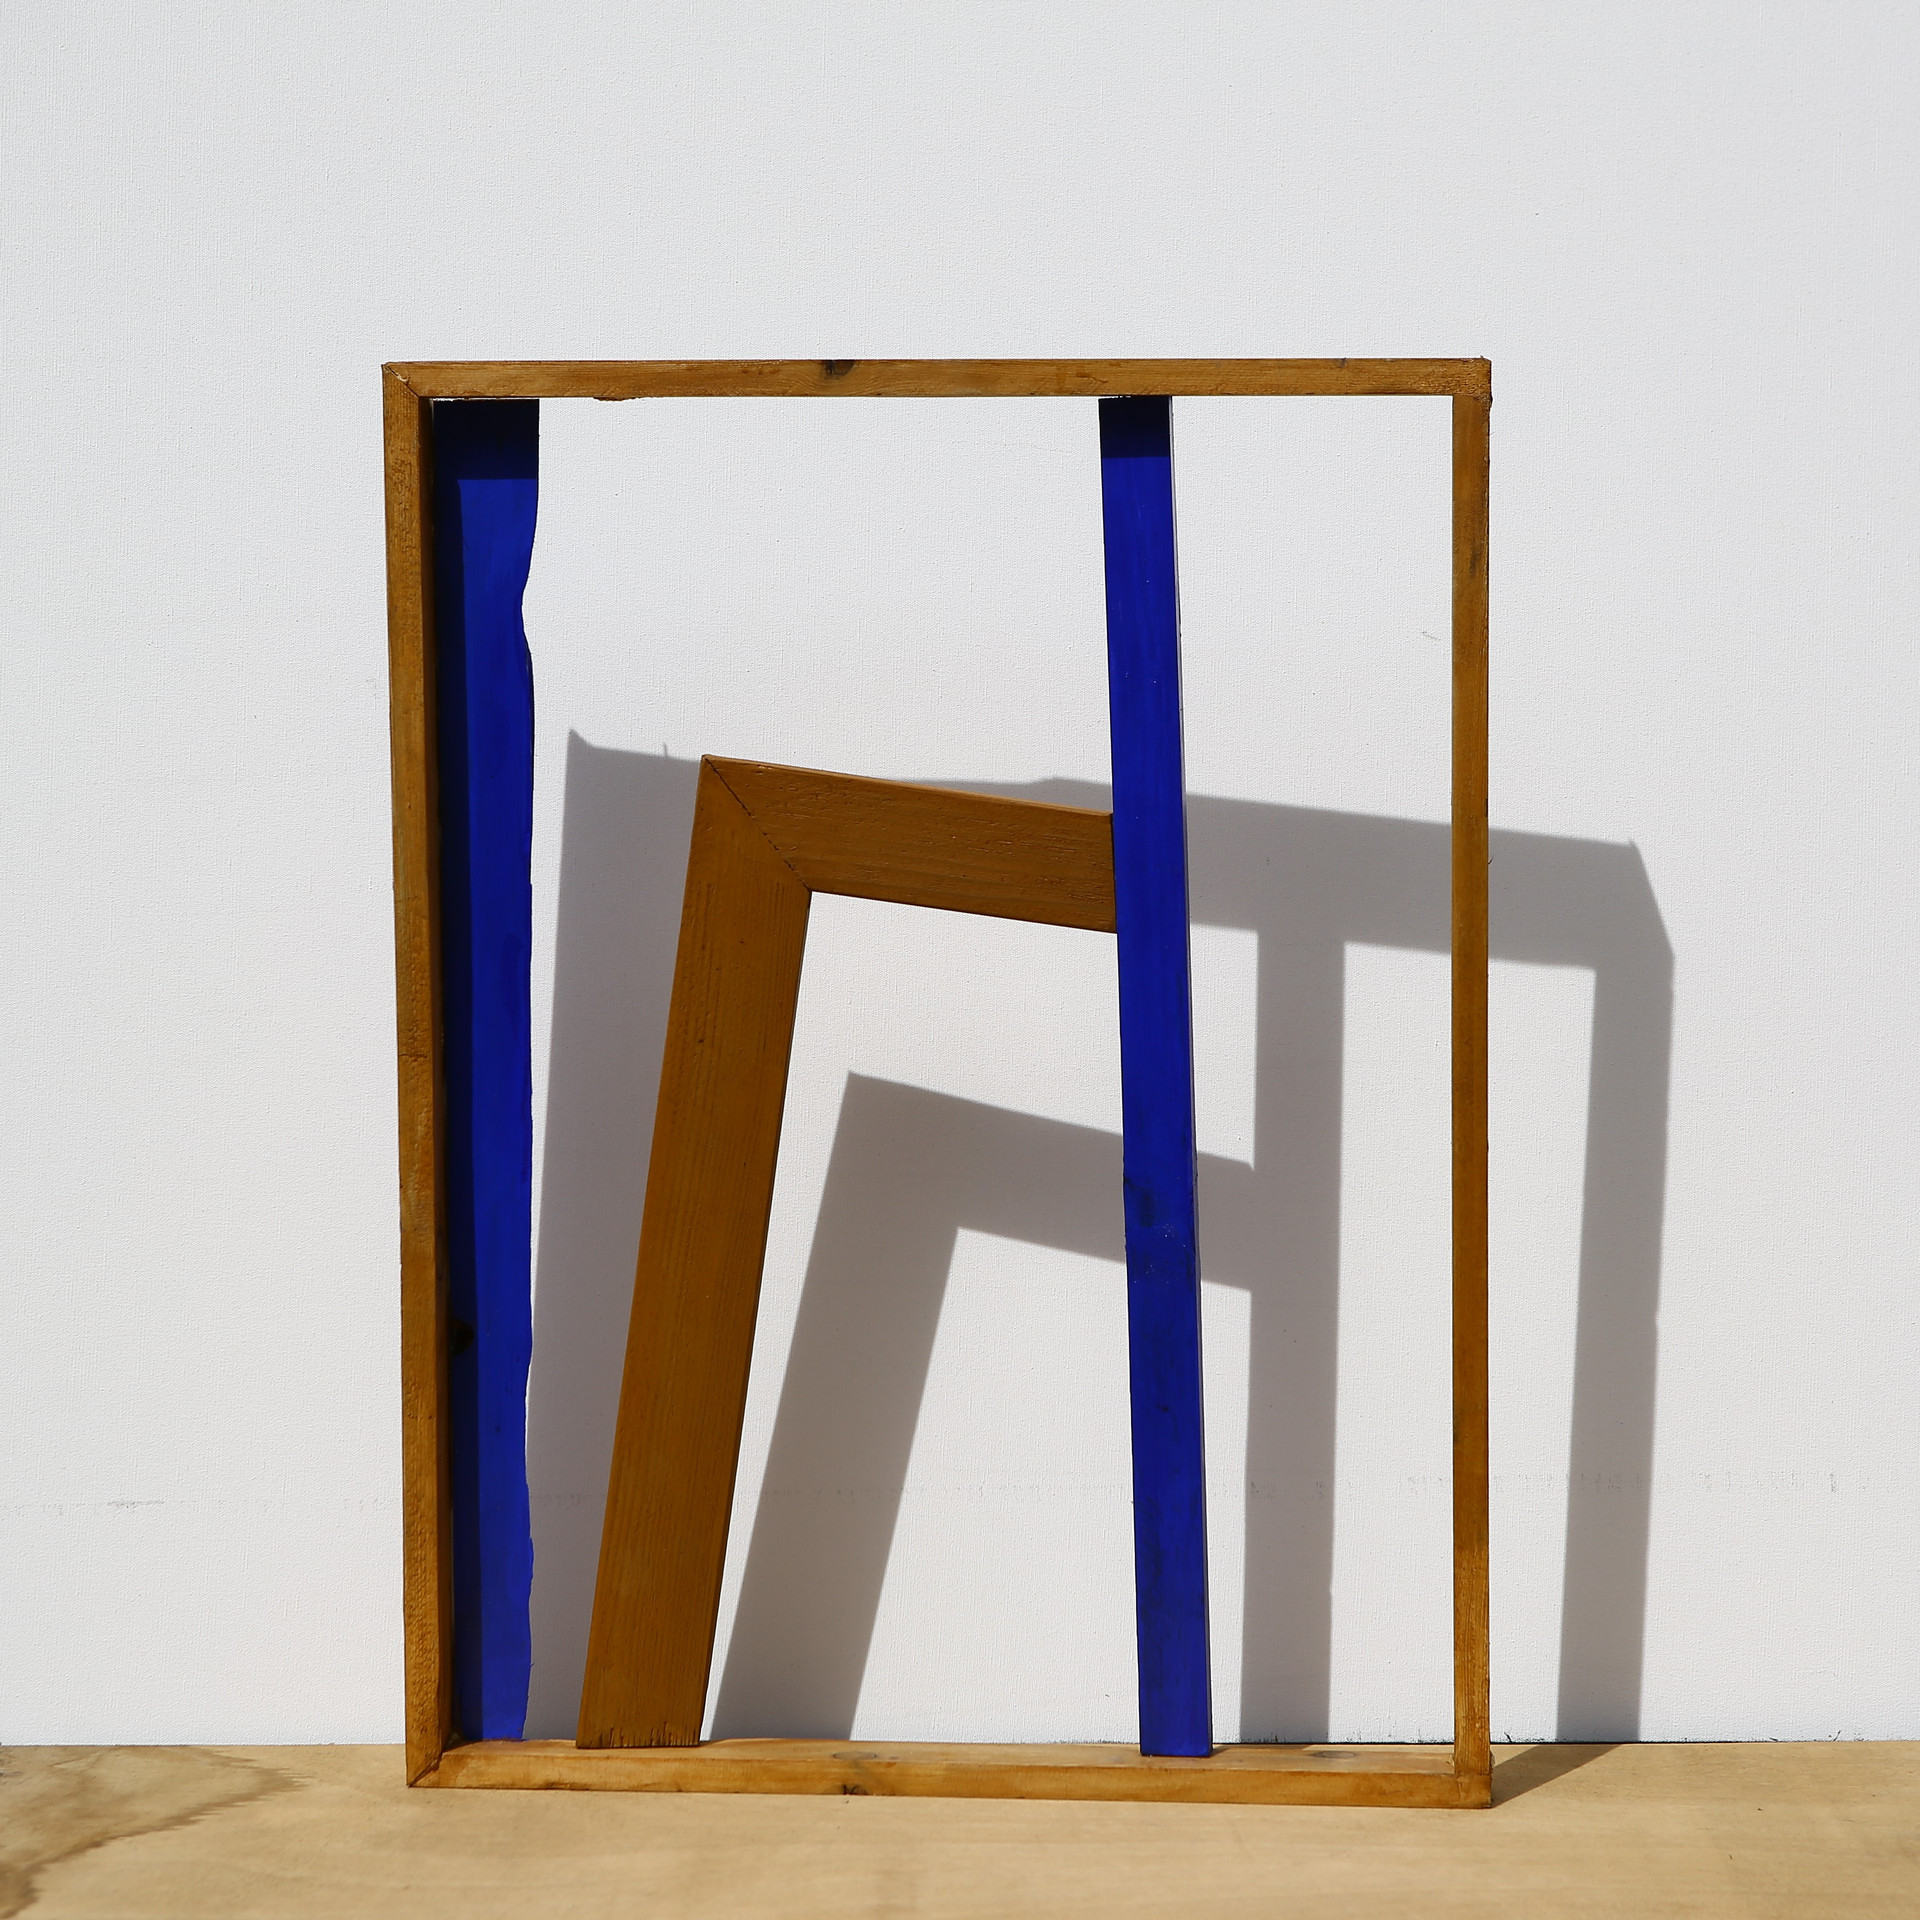 'Internal Design Series' Found Frame, Painted Wooden Pieces and a cut corner of Chassis